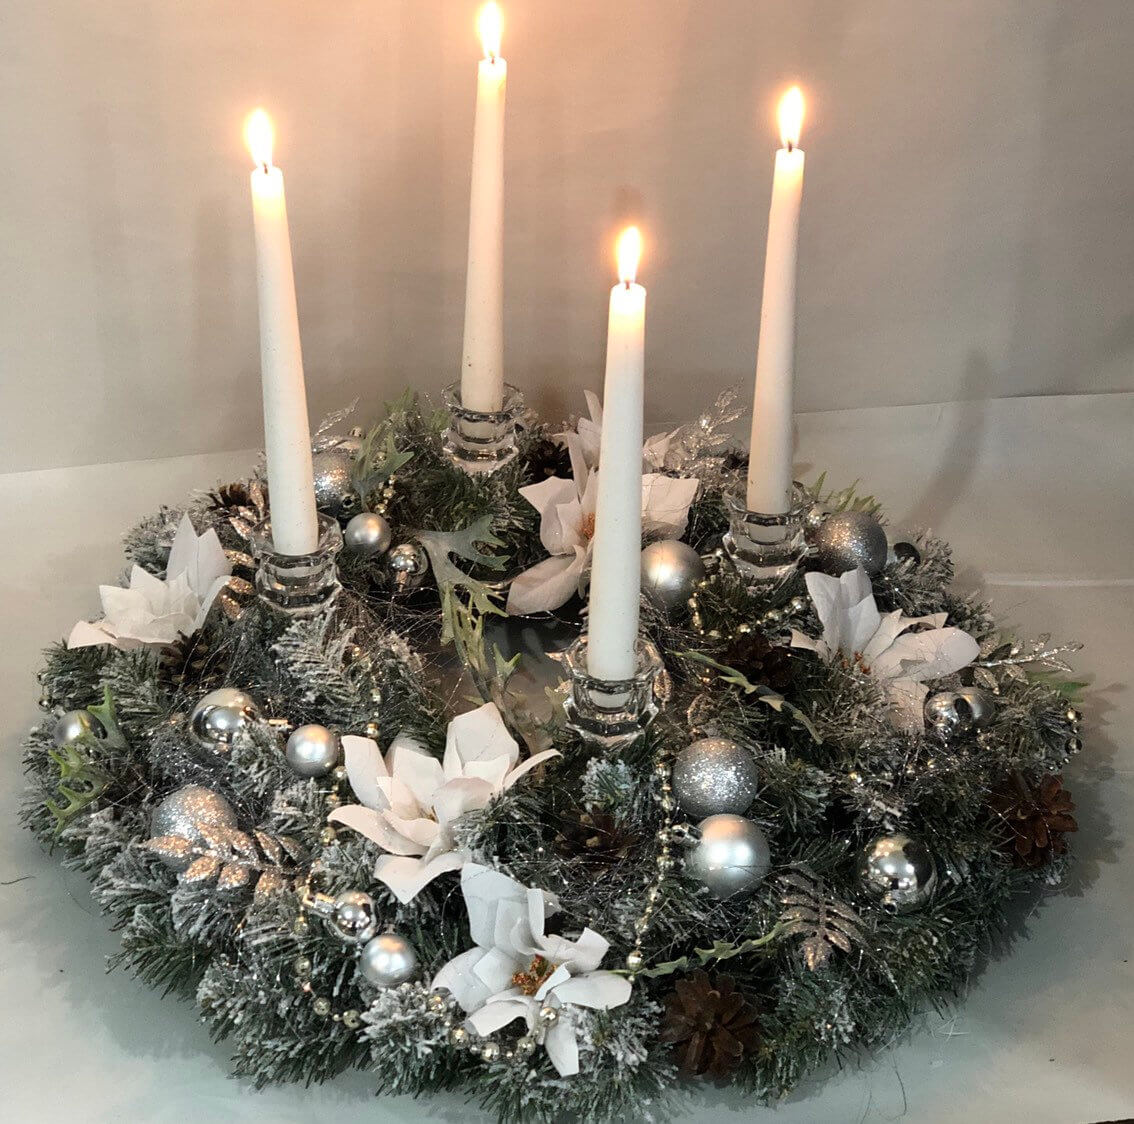 30 Best Silver Christmas Decorations To Sparkle Up Your Holiday In 2021